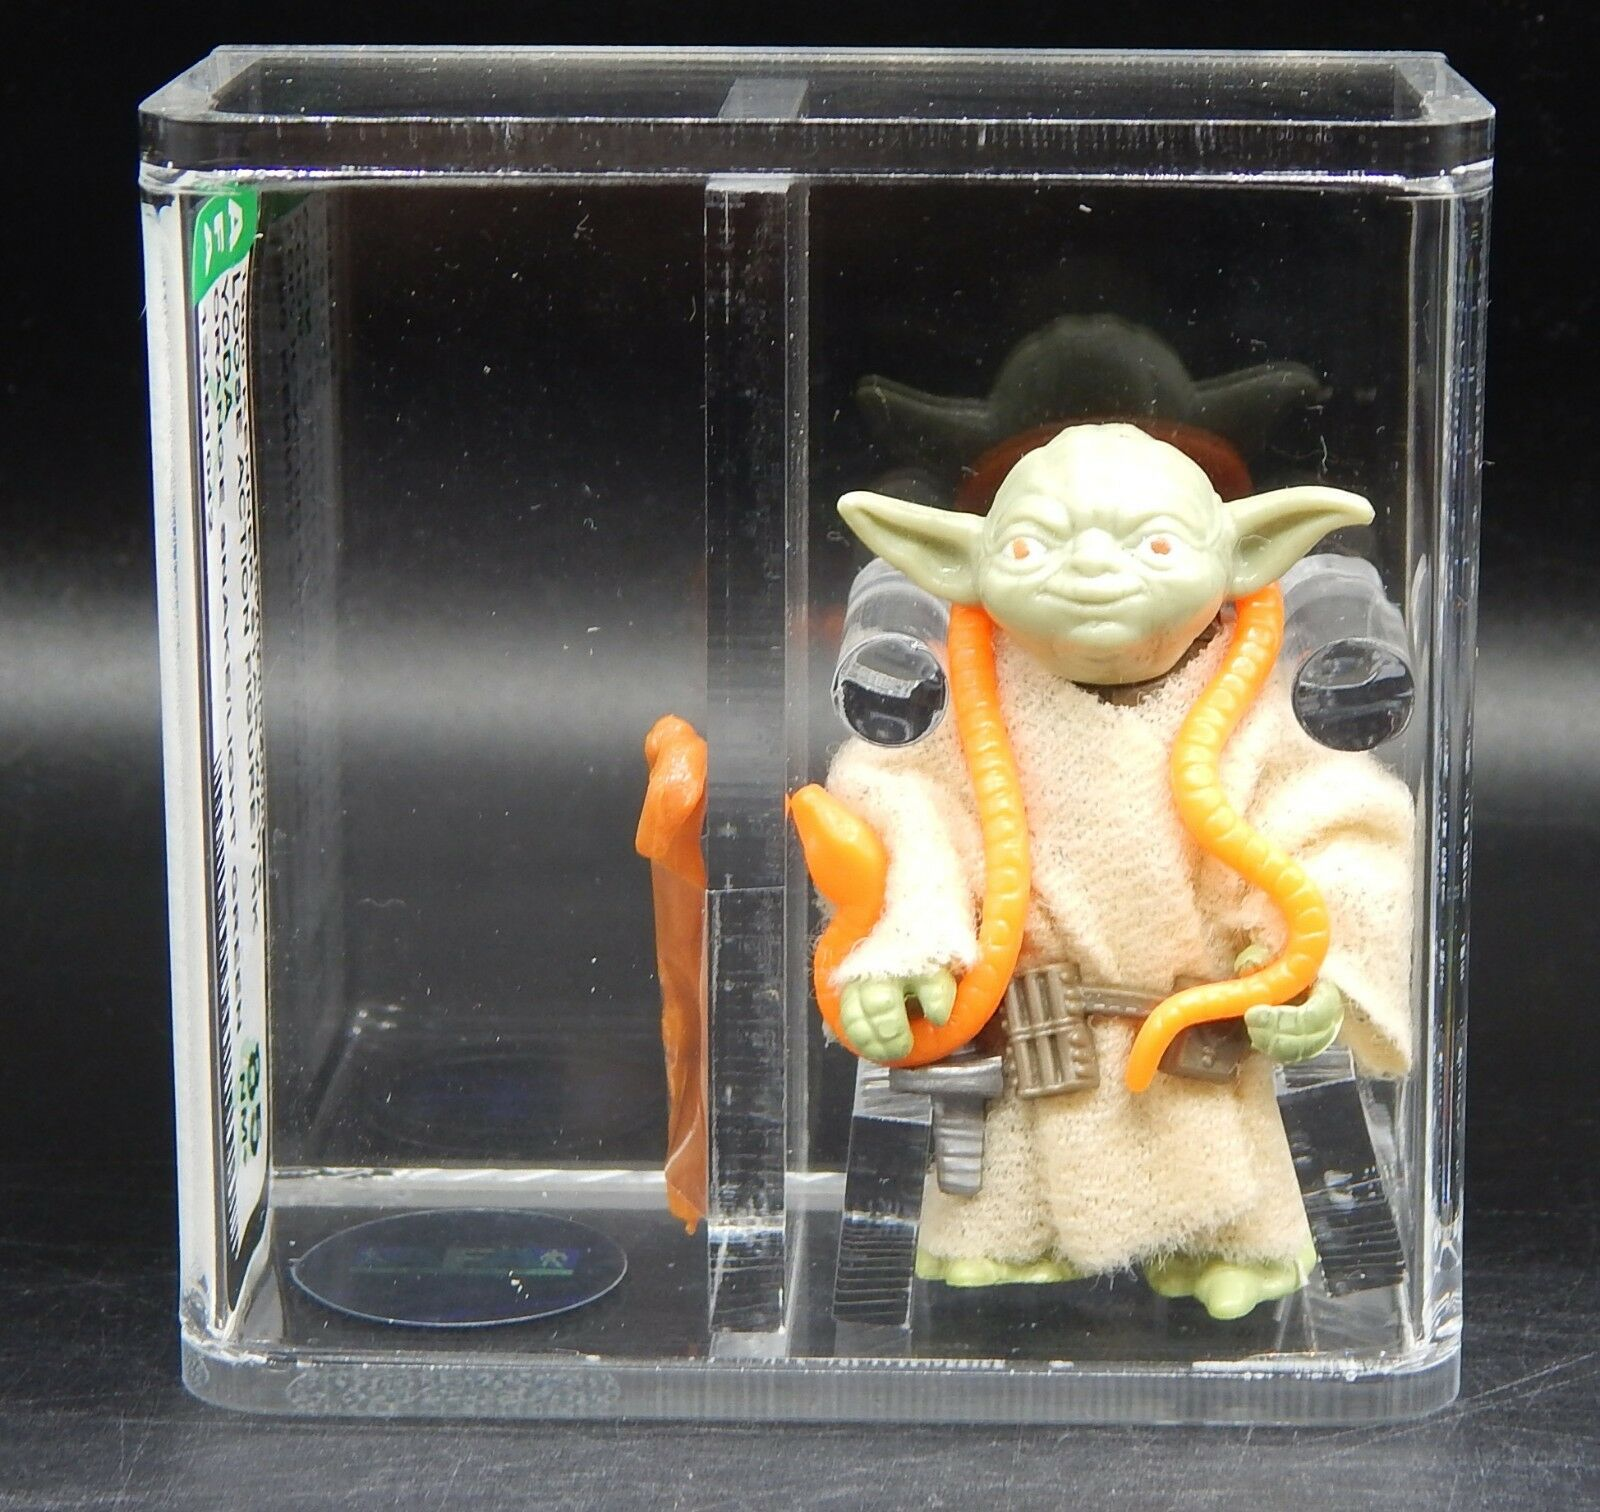 AFA 85 vintage Star Wars YODA Kenner action figure HK coo orange snake lt. green